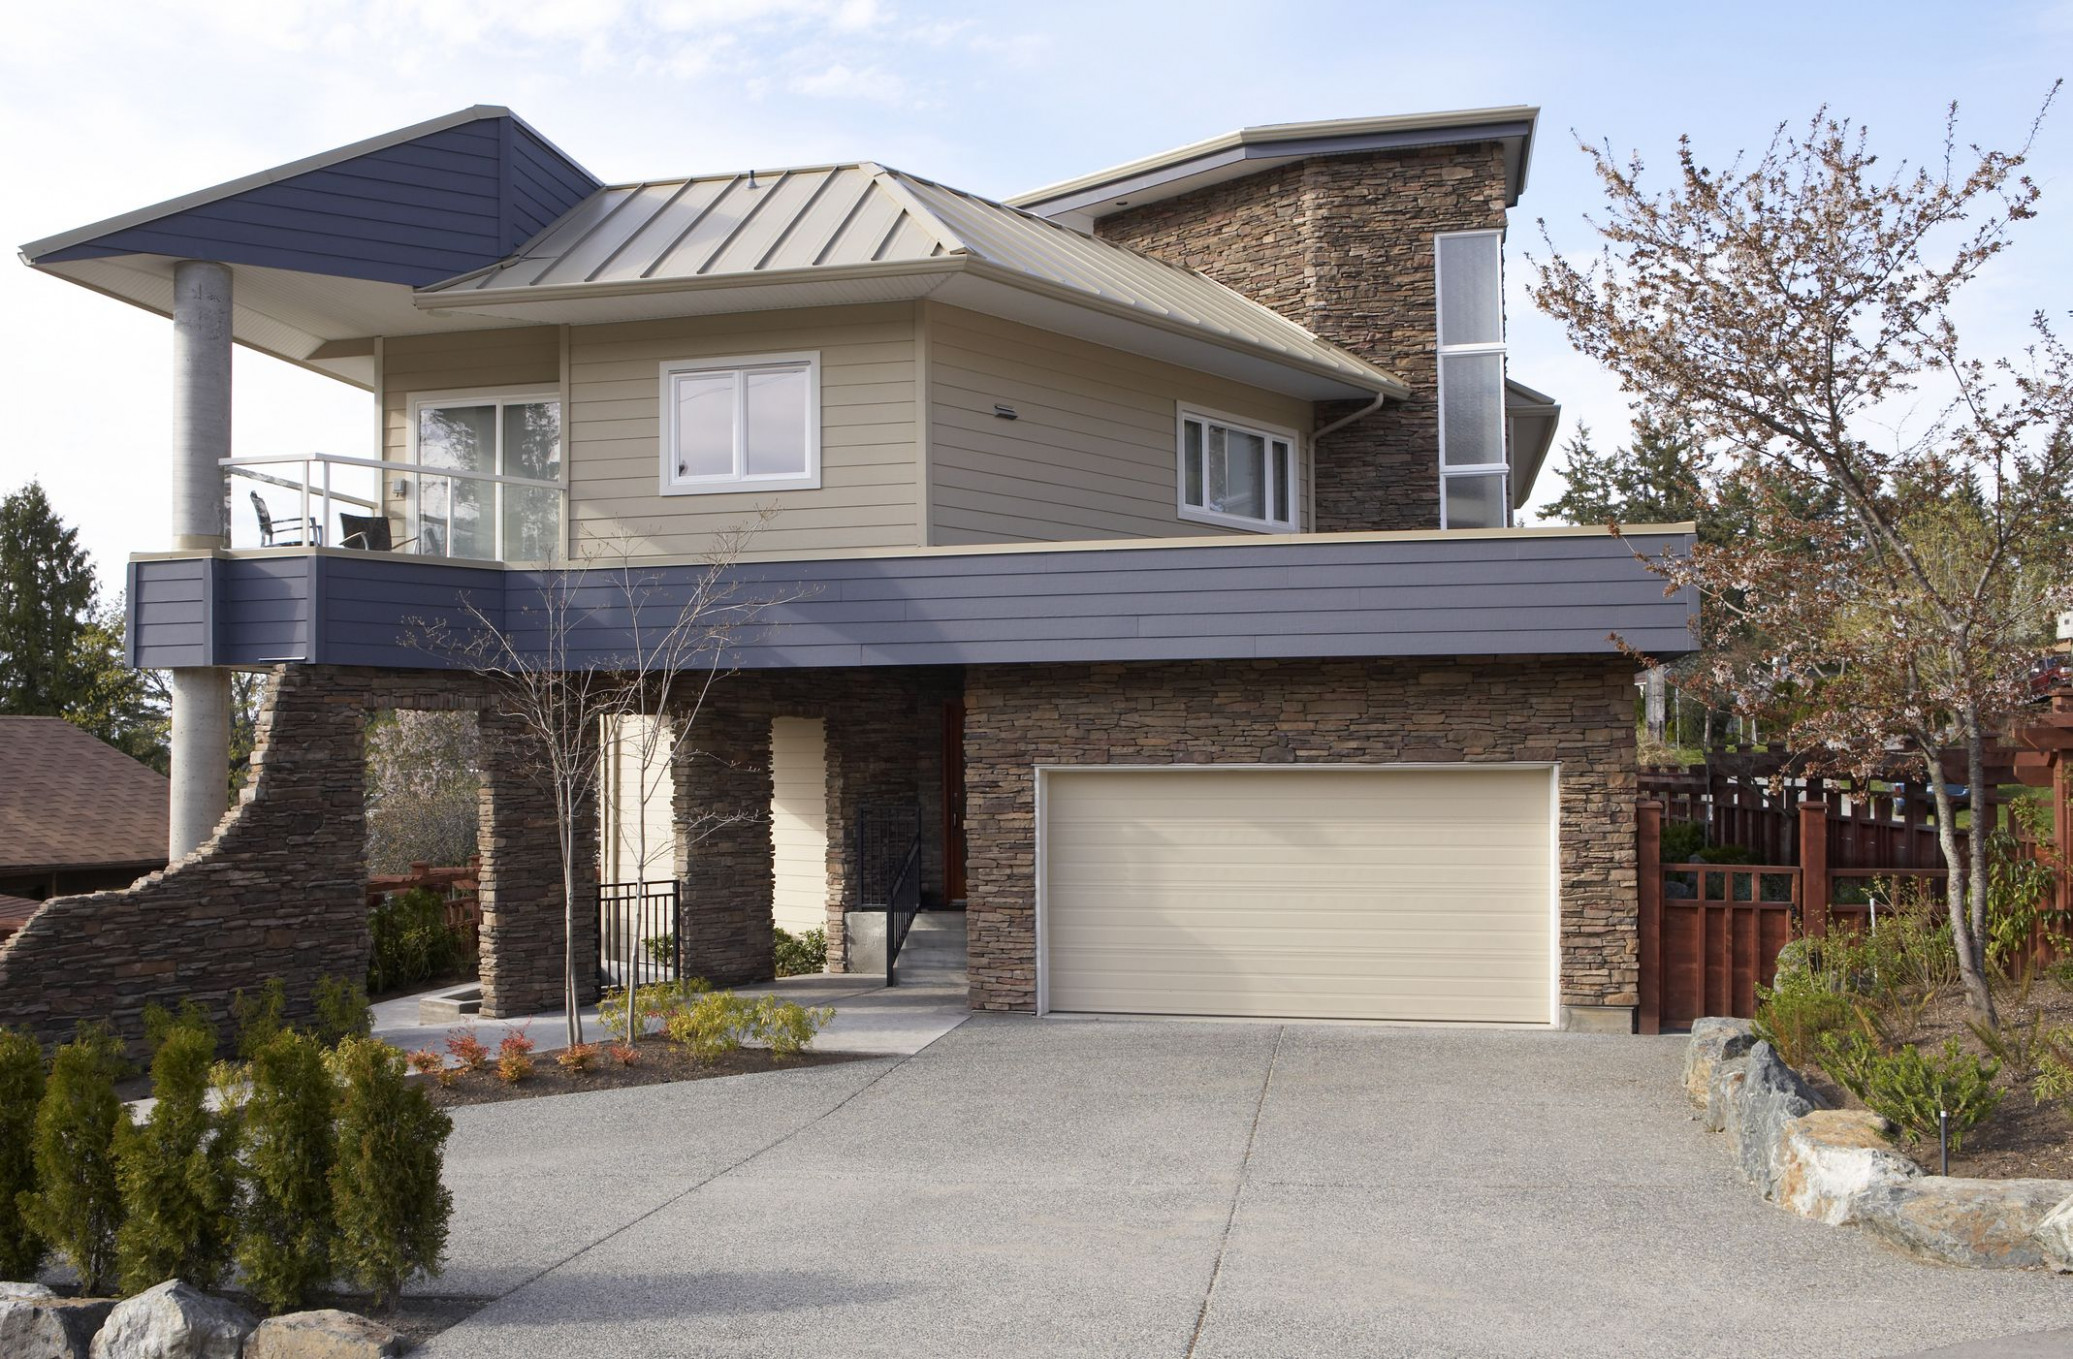 12 Tips For Designing A New Garage Carport Ideas Attached To Garage